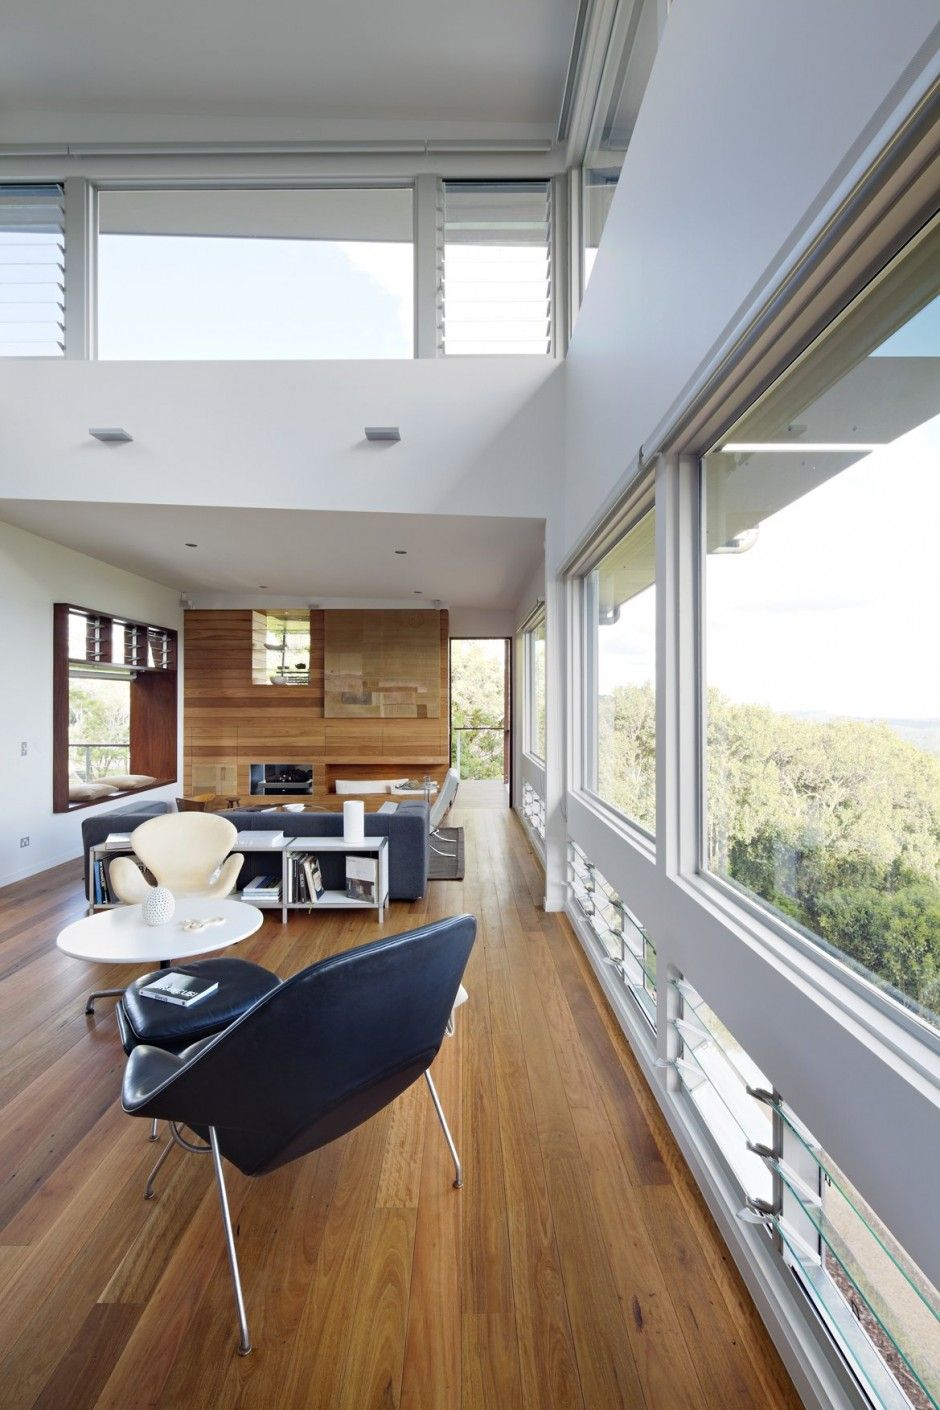 Not a tiny house. Nice uses of natural ventilation (low windows that open on one side of the house, high on the other) and wide overhangs that balance the huge amount of glass. This must be a very hot climate, no need for insulation from cold, with fabulous views.